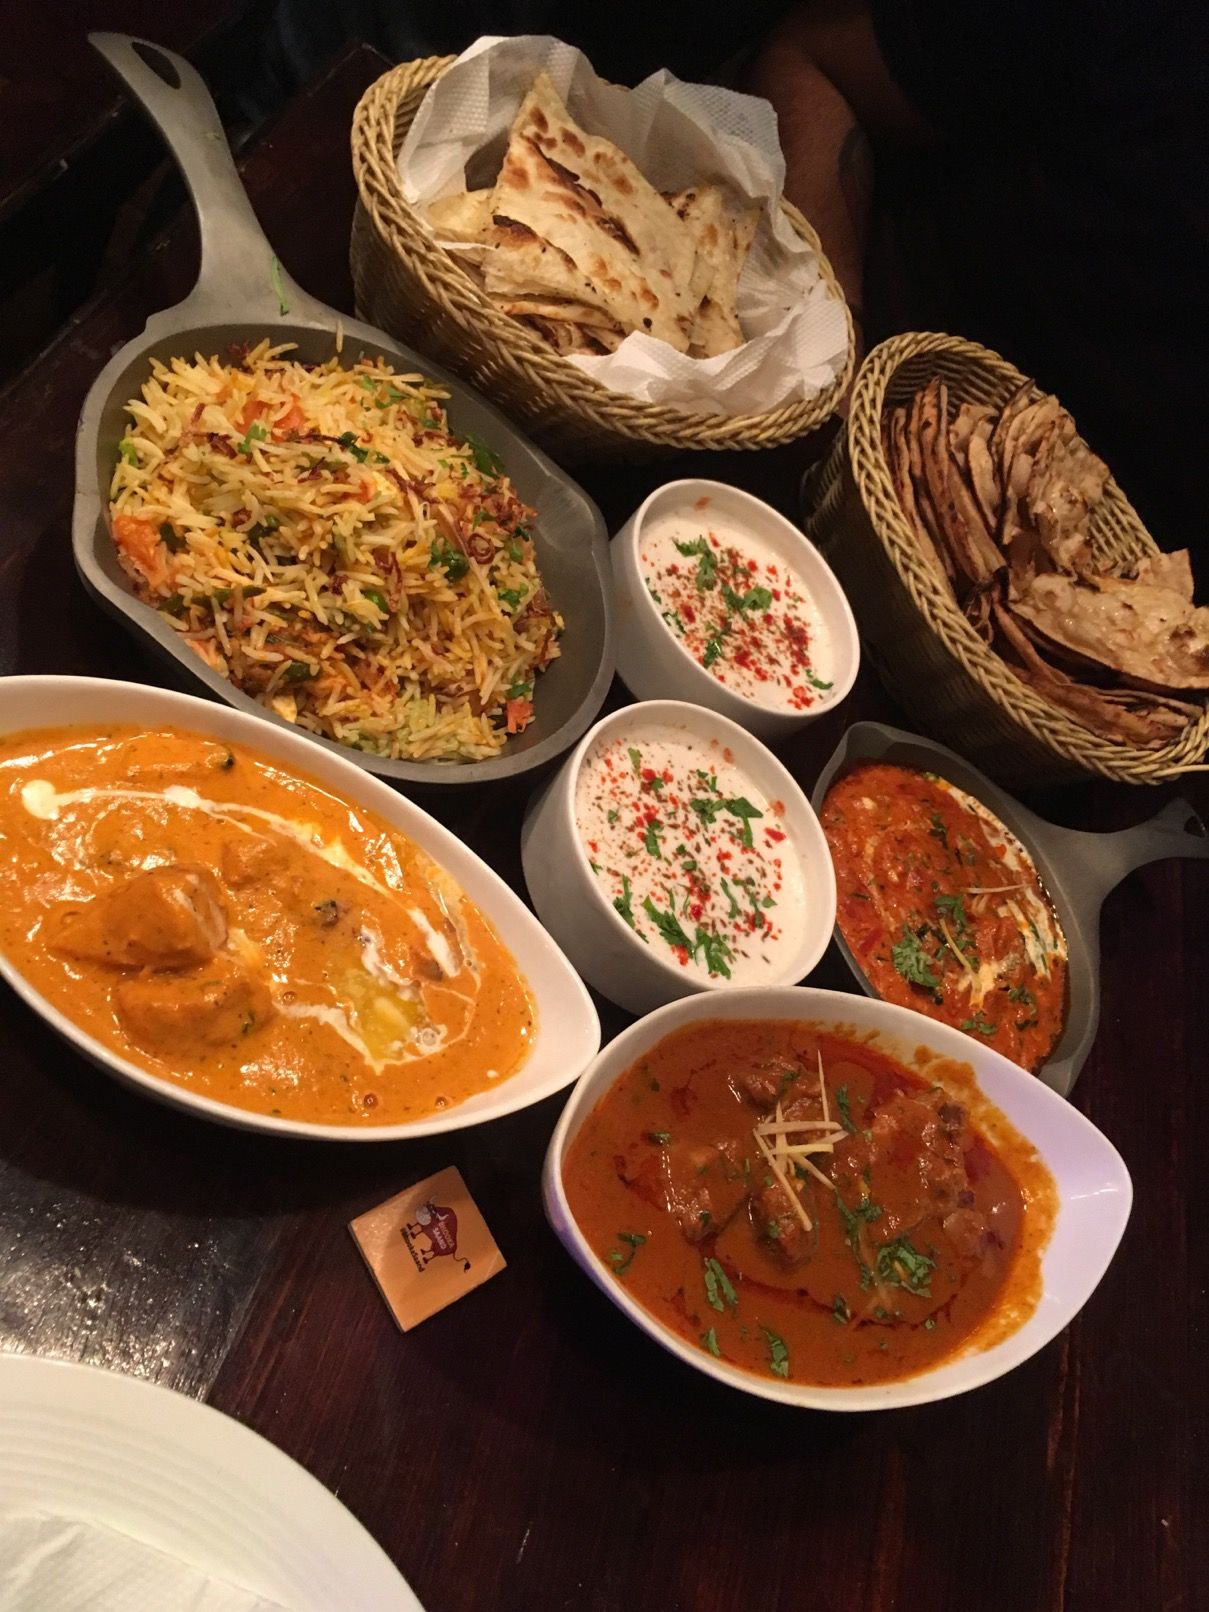 Check Out Sneak Preview And Food Review Of The The Headquarter Lounge Bar Located In New Delhi Food Food Reviews Food Blog